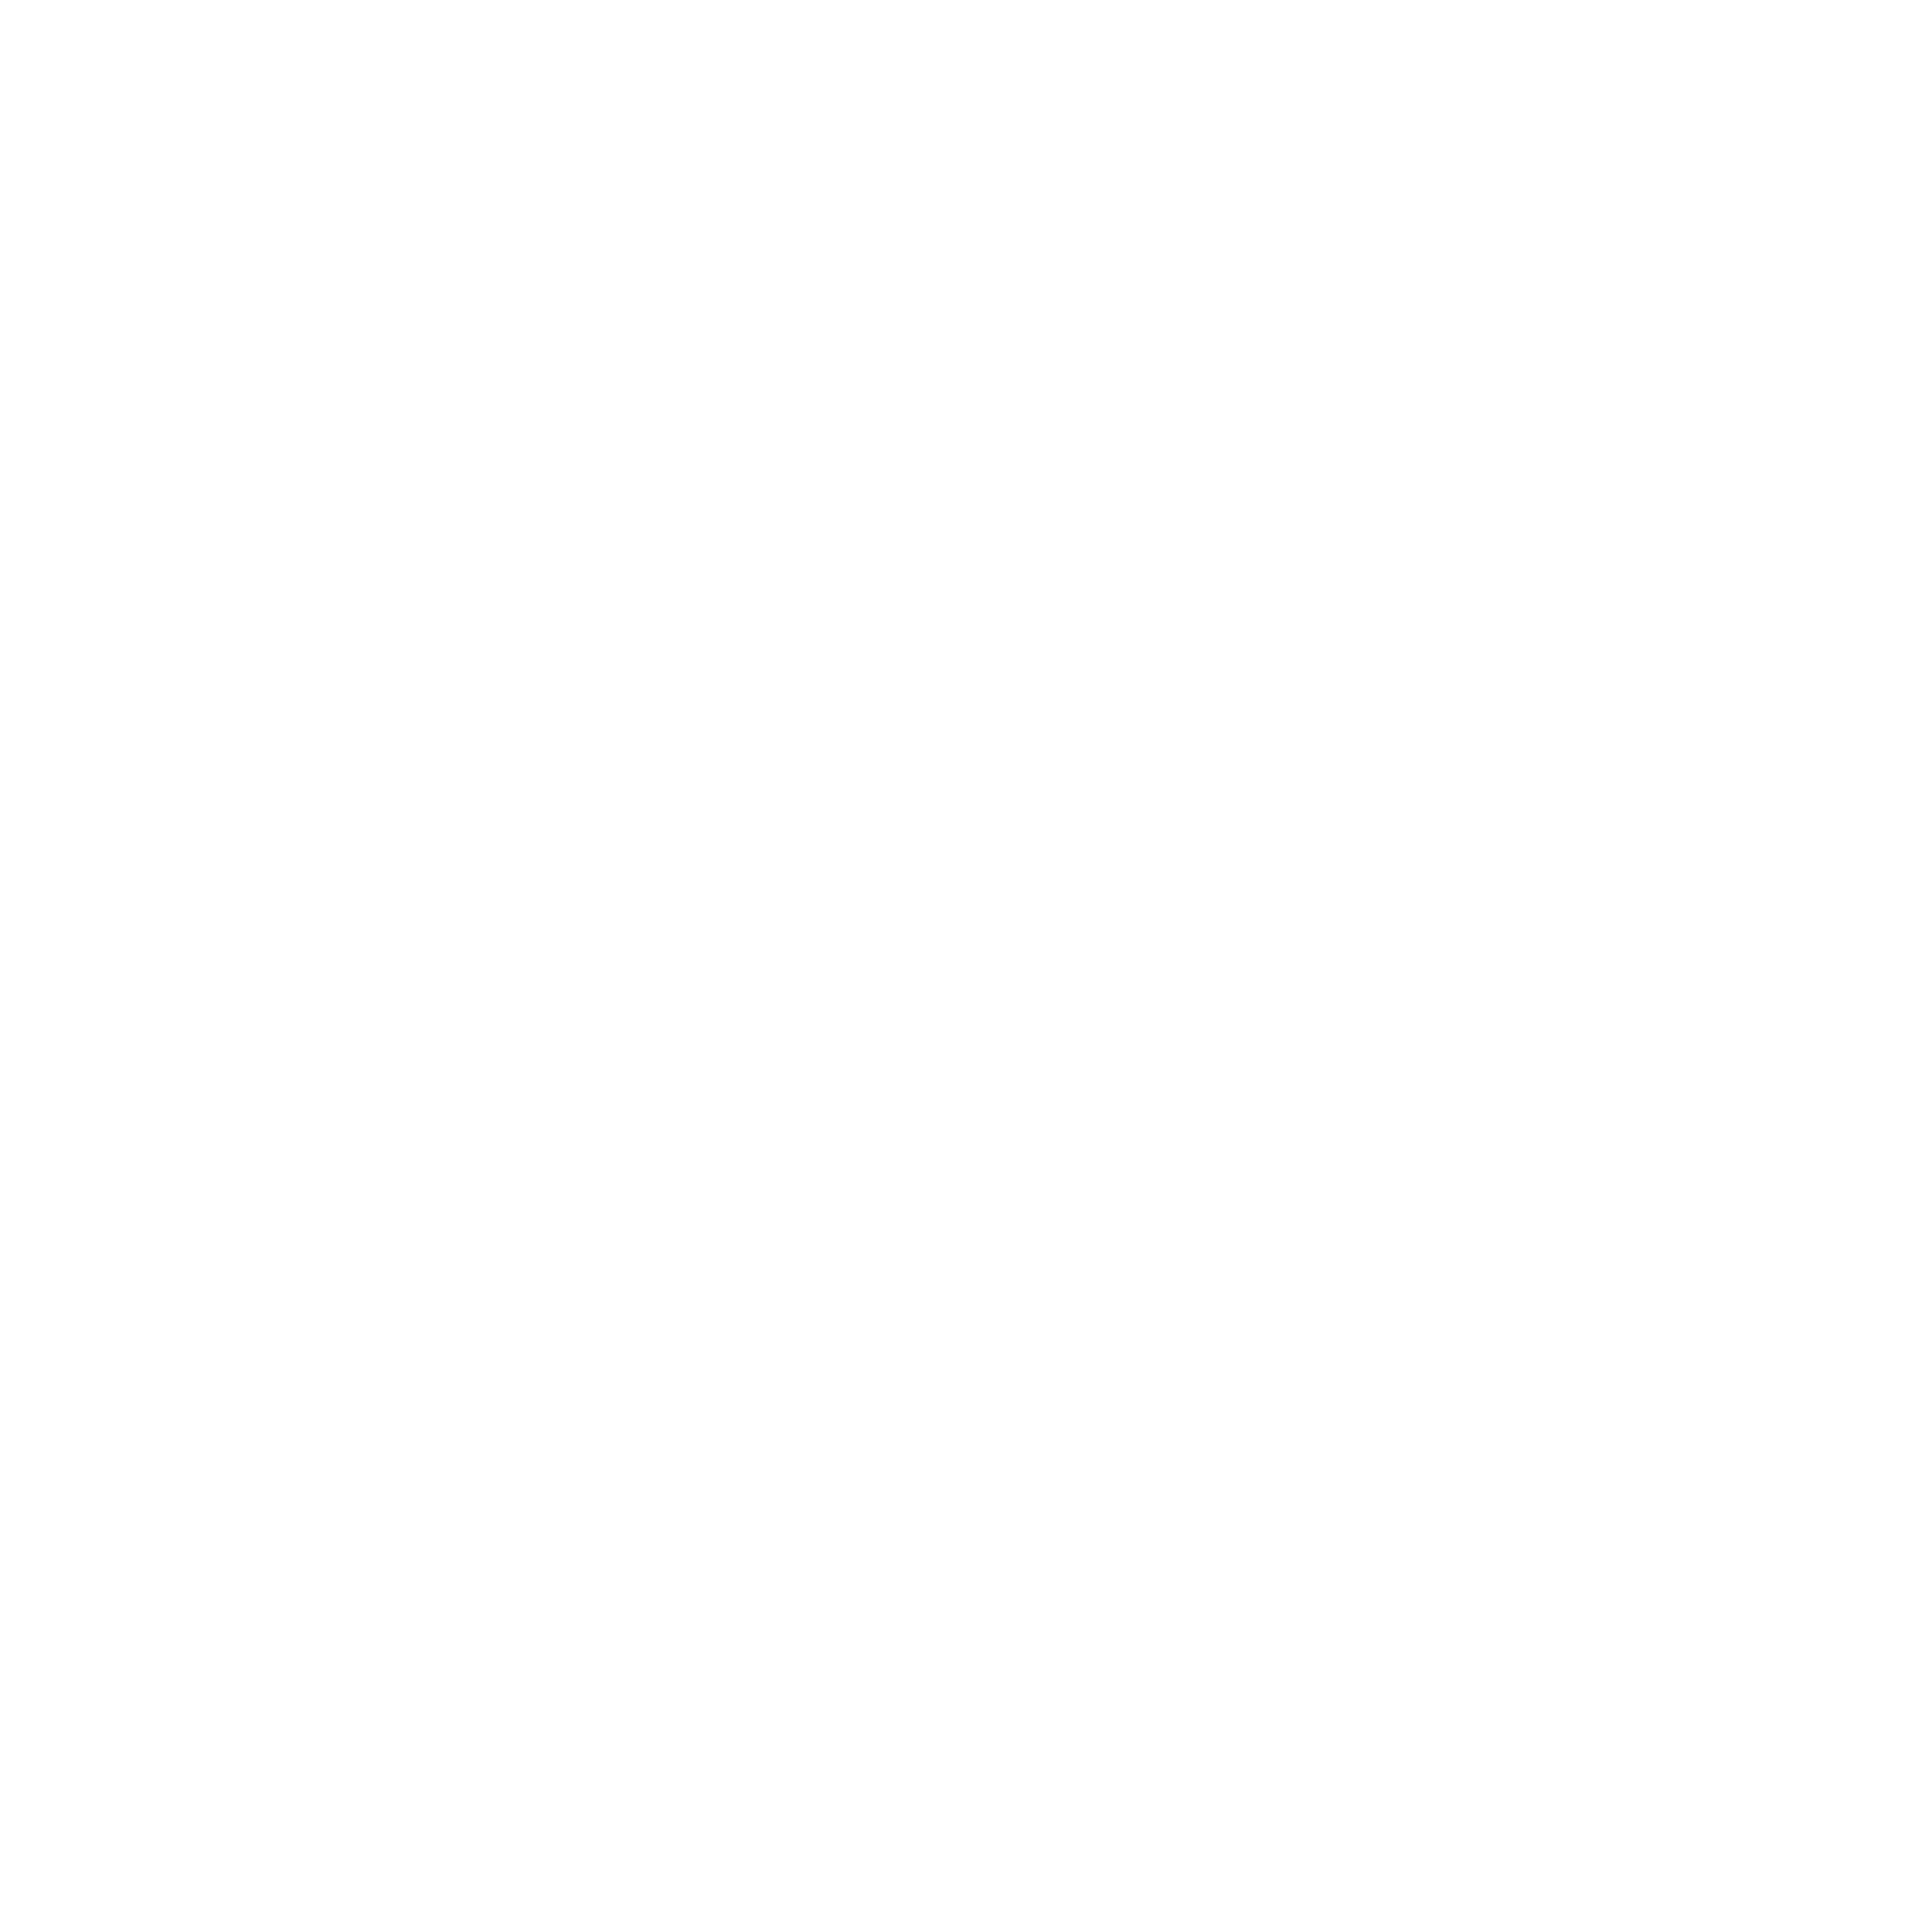 Image of outline of a person.